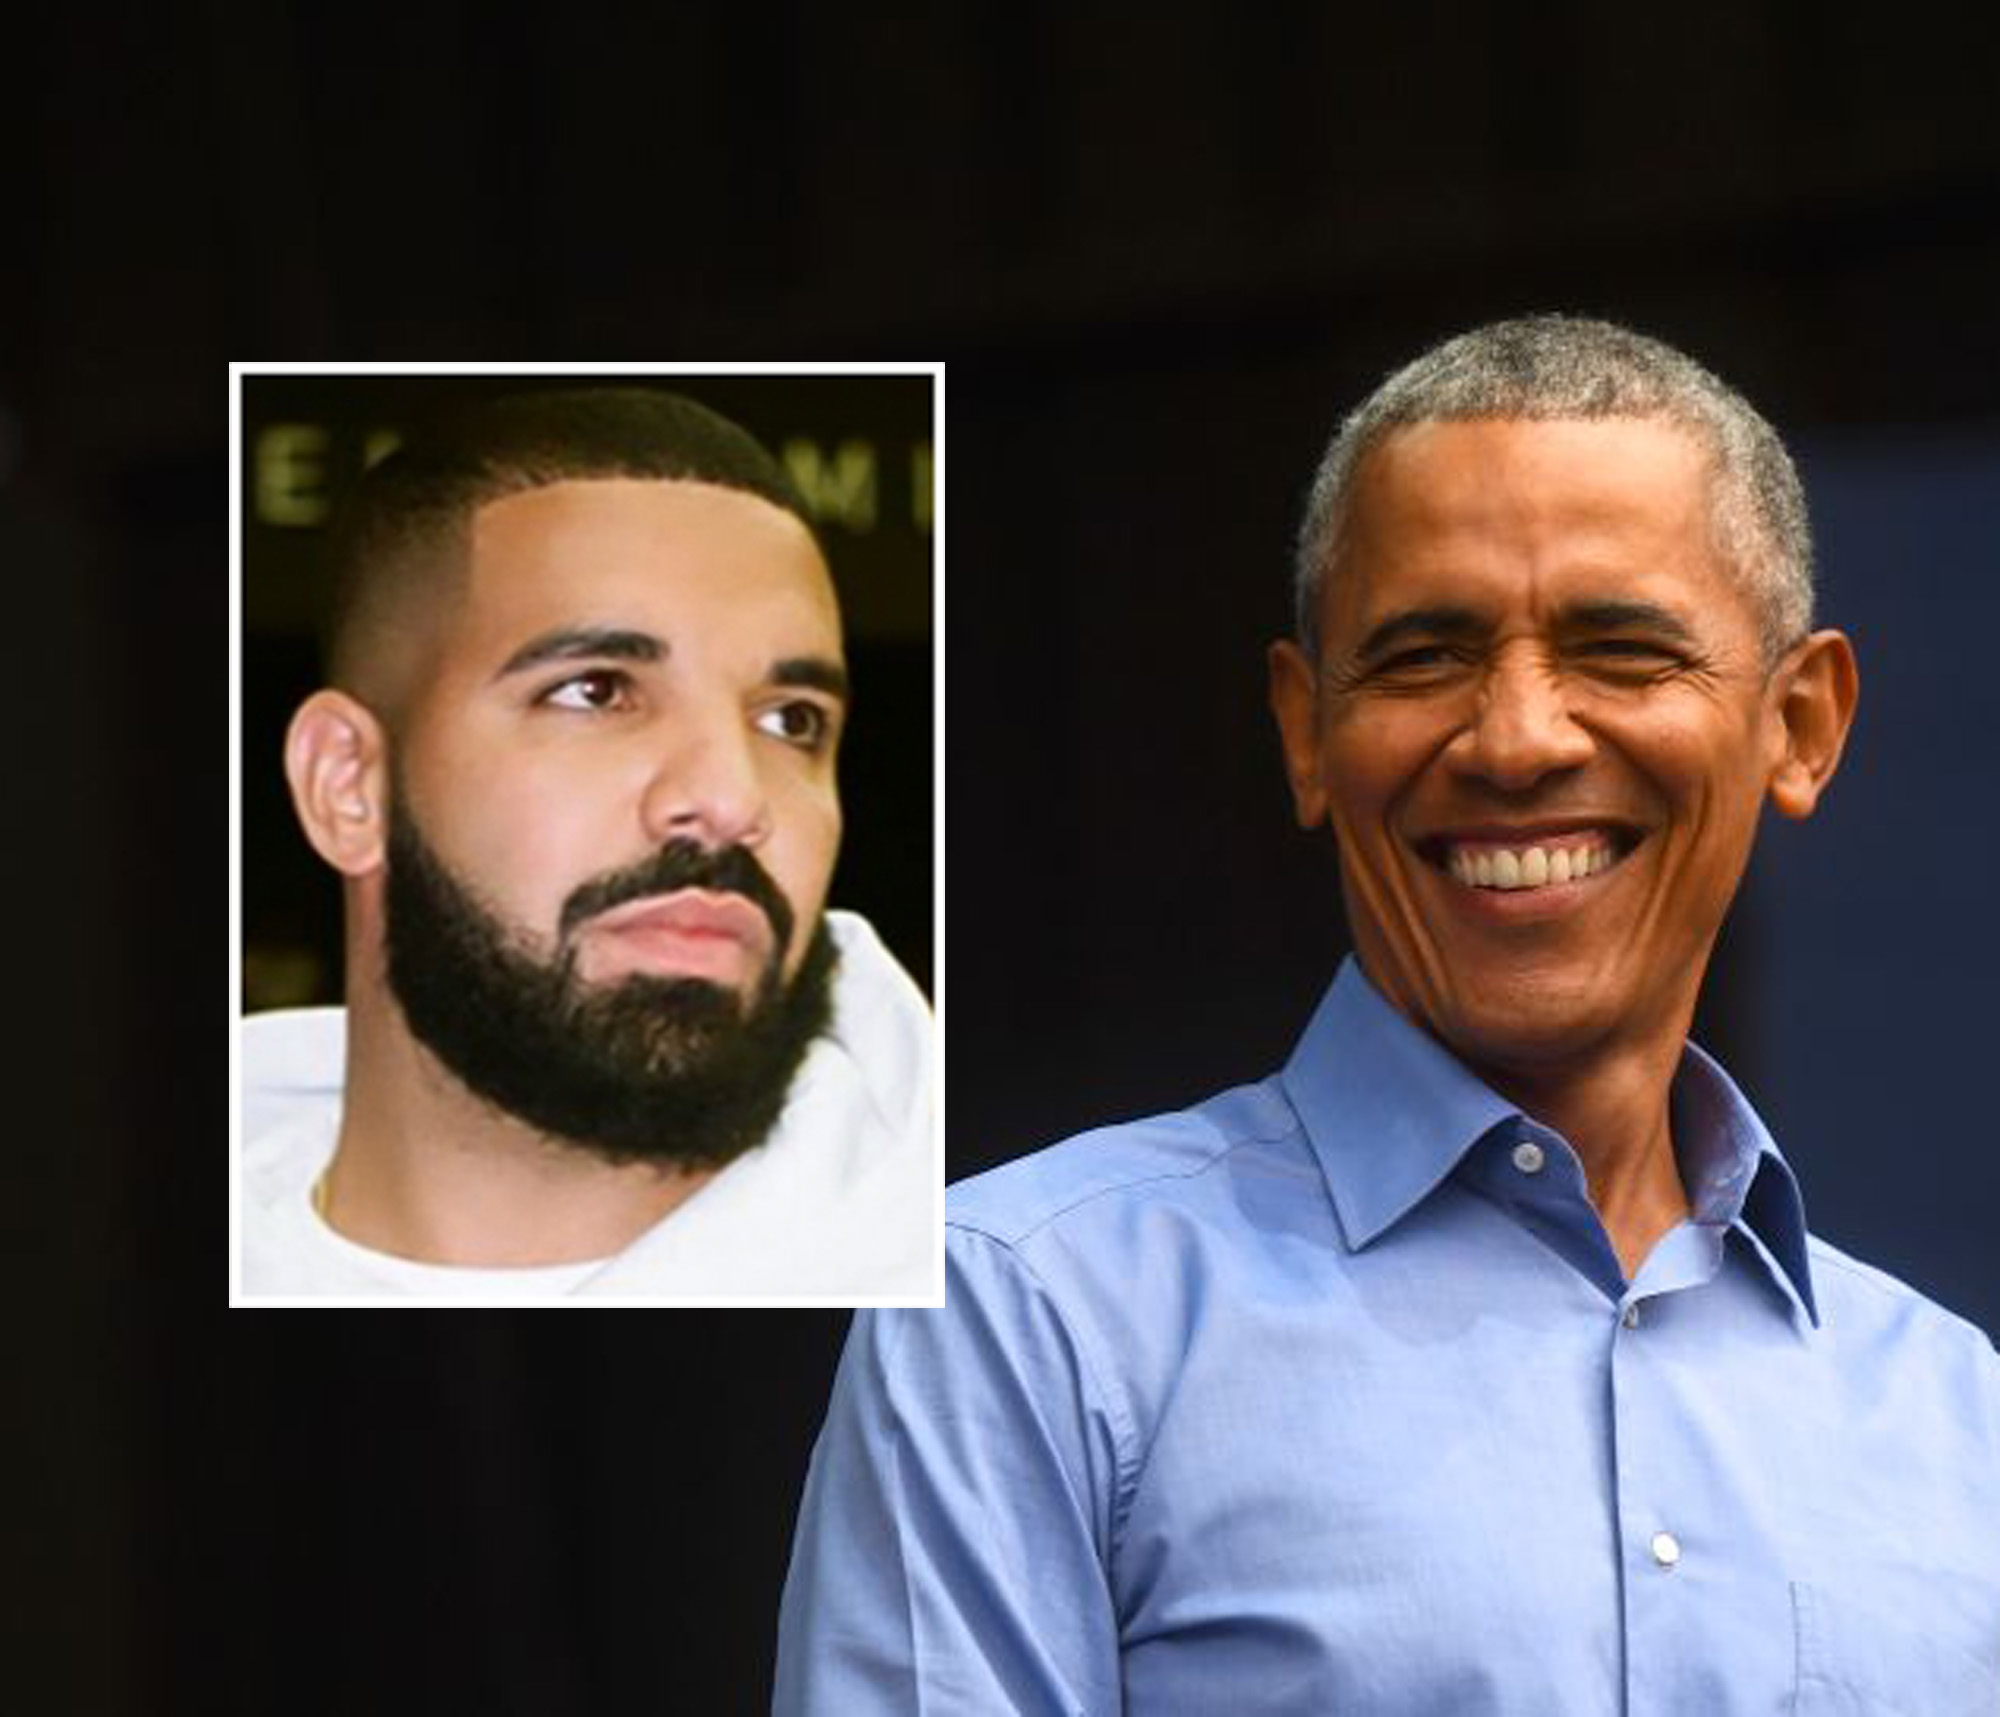 Aubrey Graham aka Drake og Barack Obama (Mark Makela/Getty, Instagram/champagnepapi)